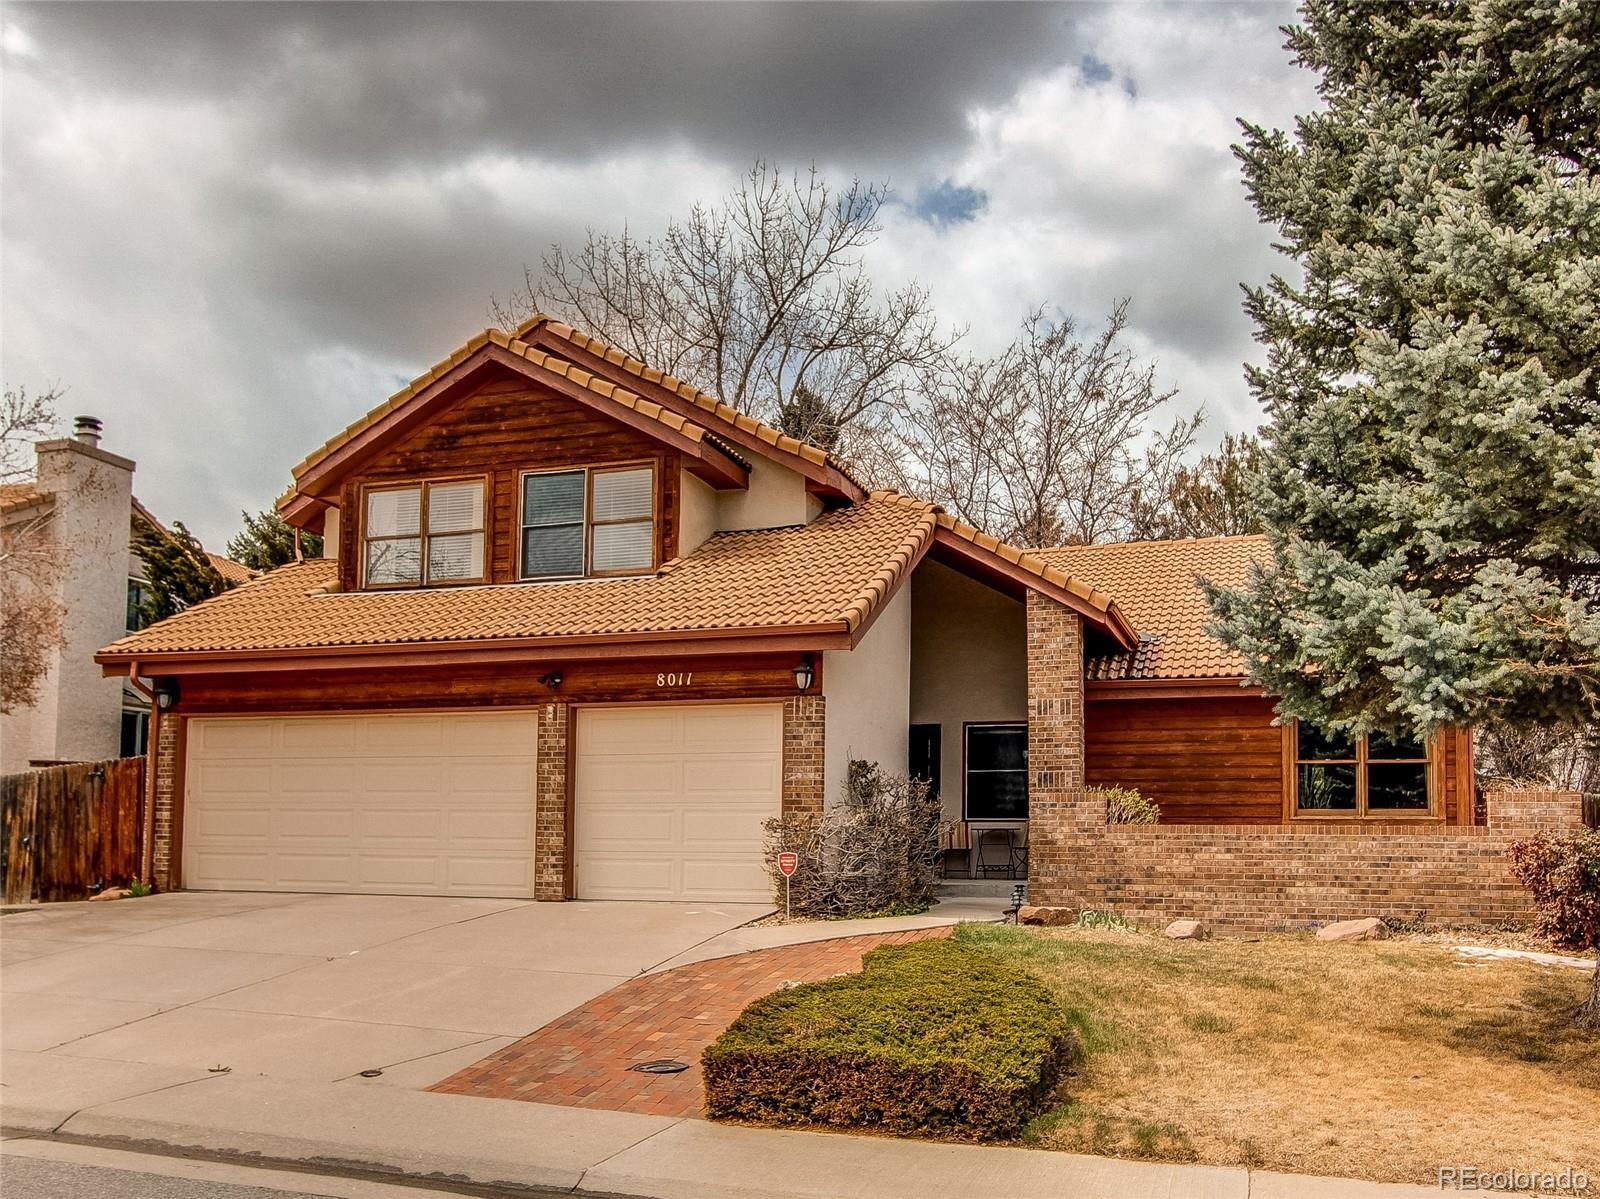 8011 Eagle Feather Way, Lone Tree, CO 80124 - #: 8133101